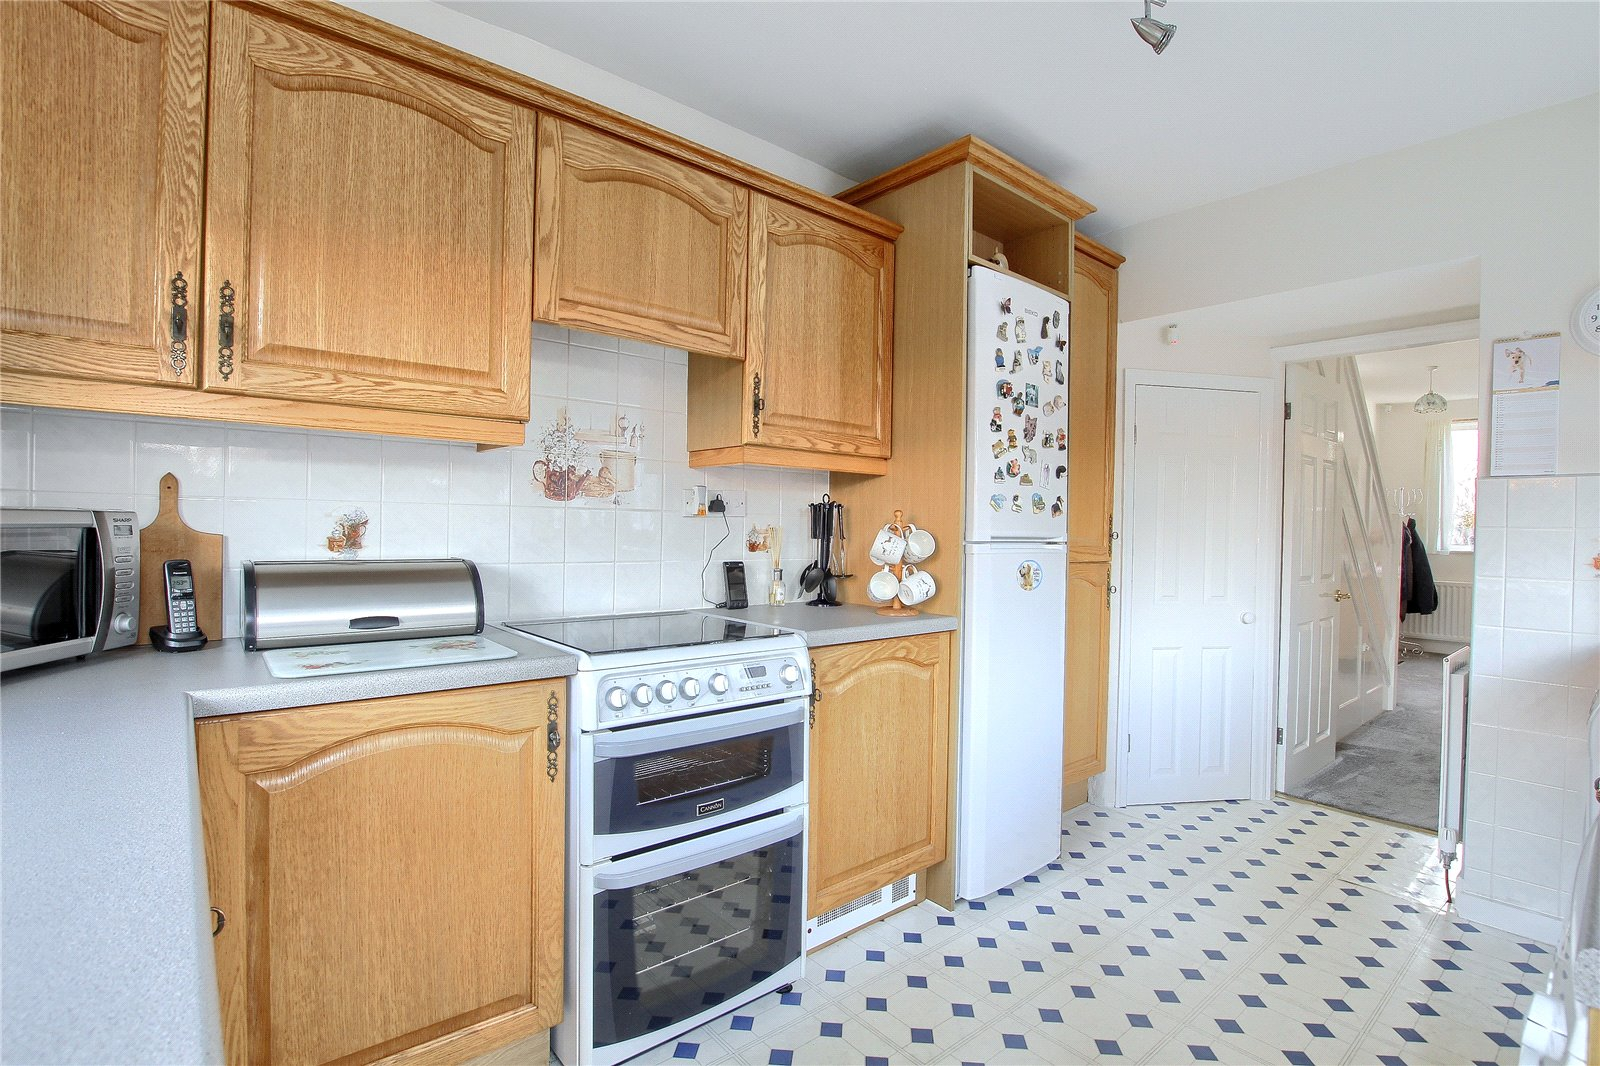 3 bed house for sale in Benton Road, Tollesby  - Property Image 7